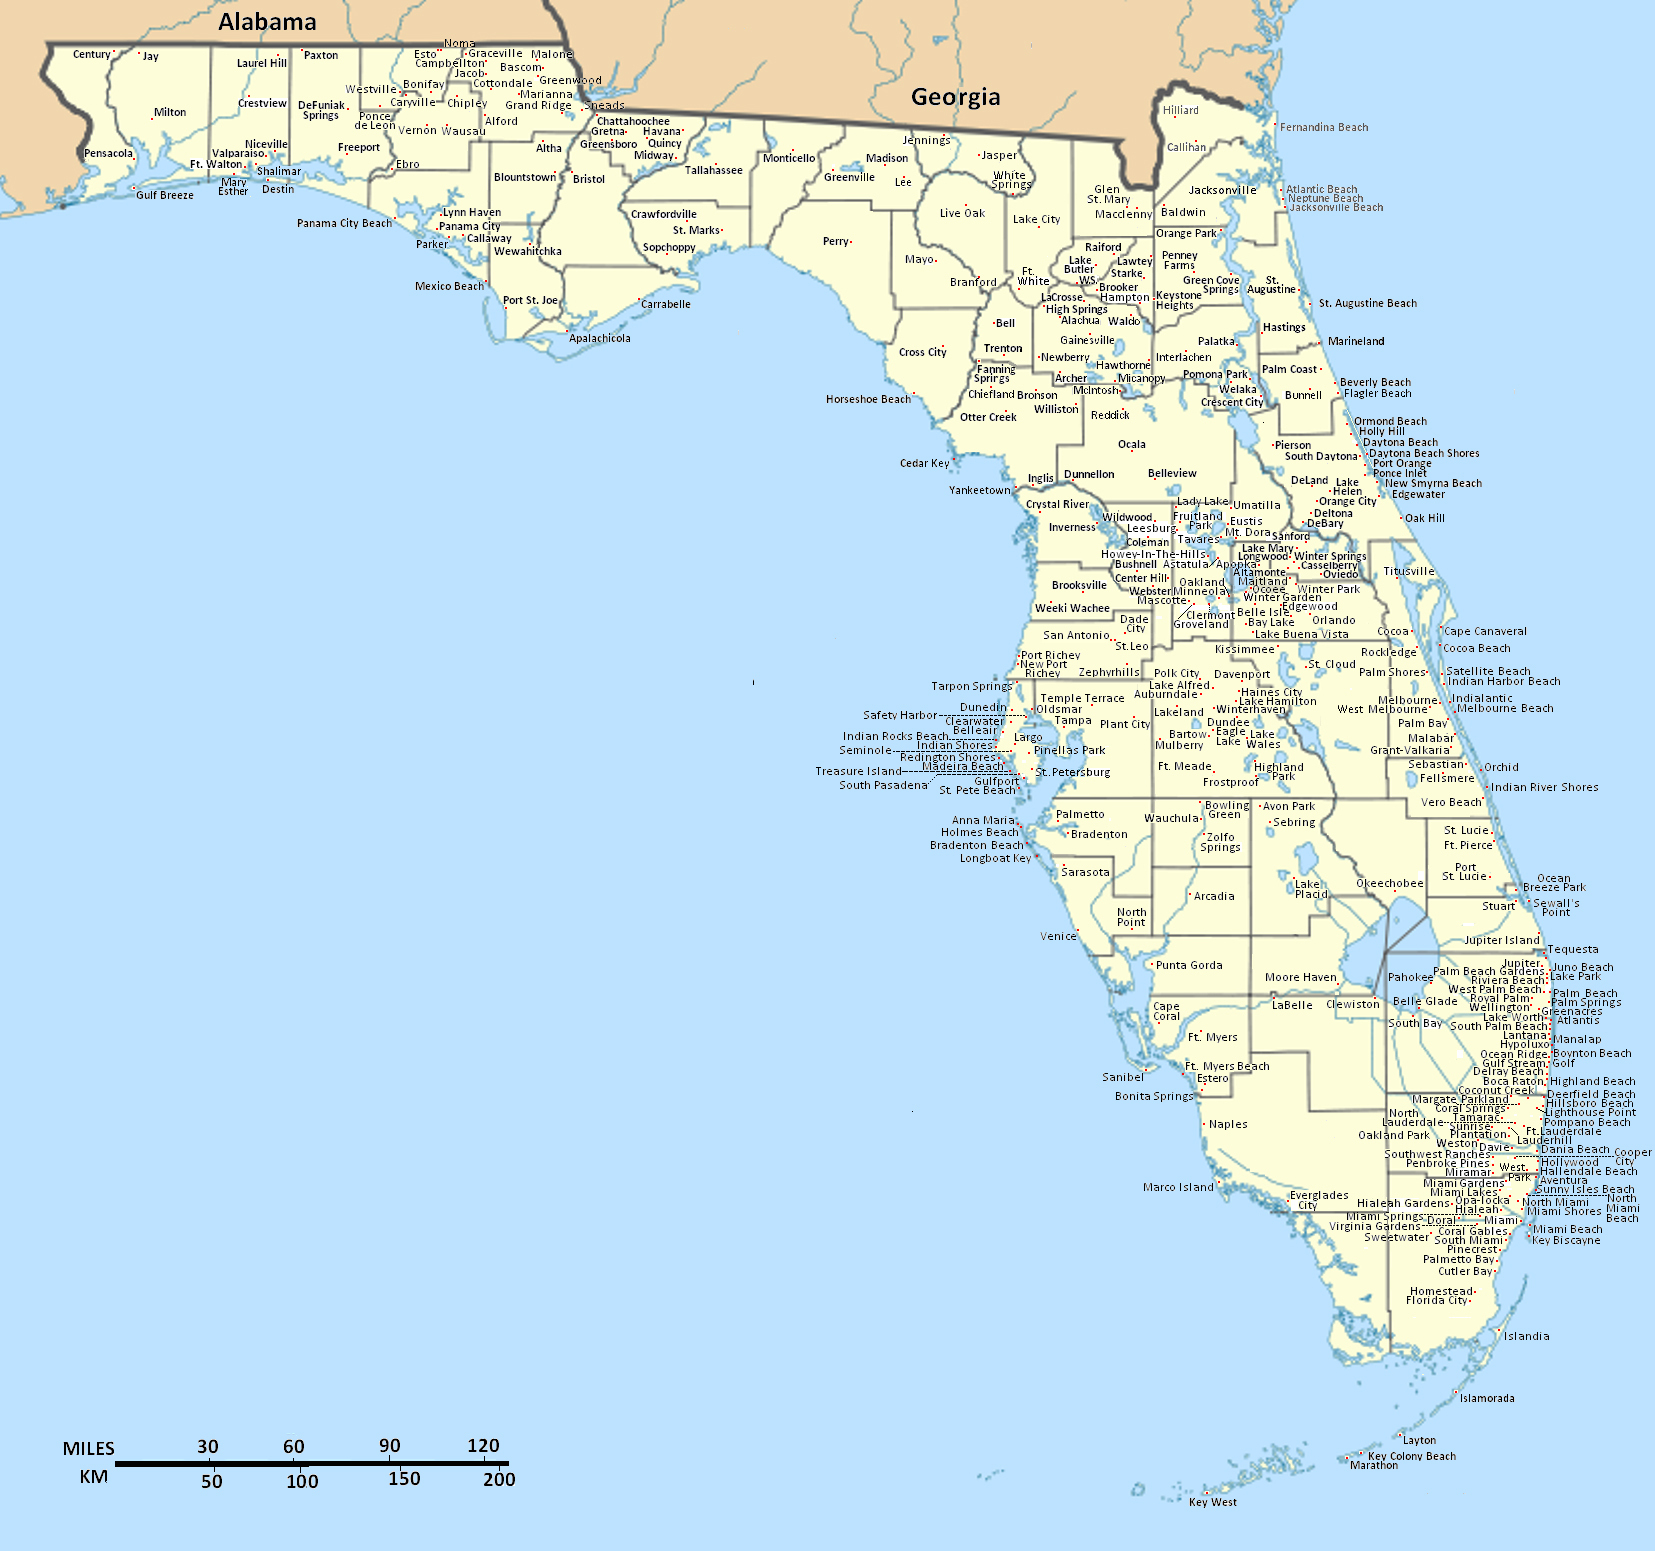 Detailed Florida State Map With Cities. Florida State Detailed Map - Florida St Map